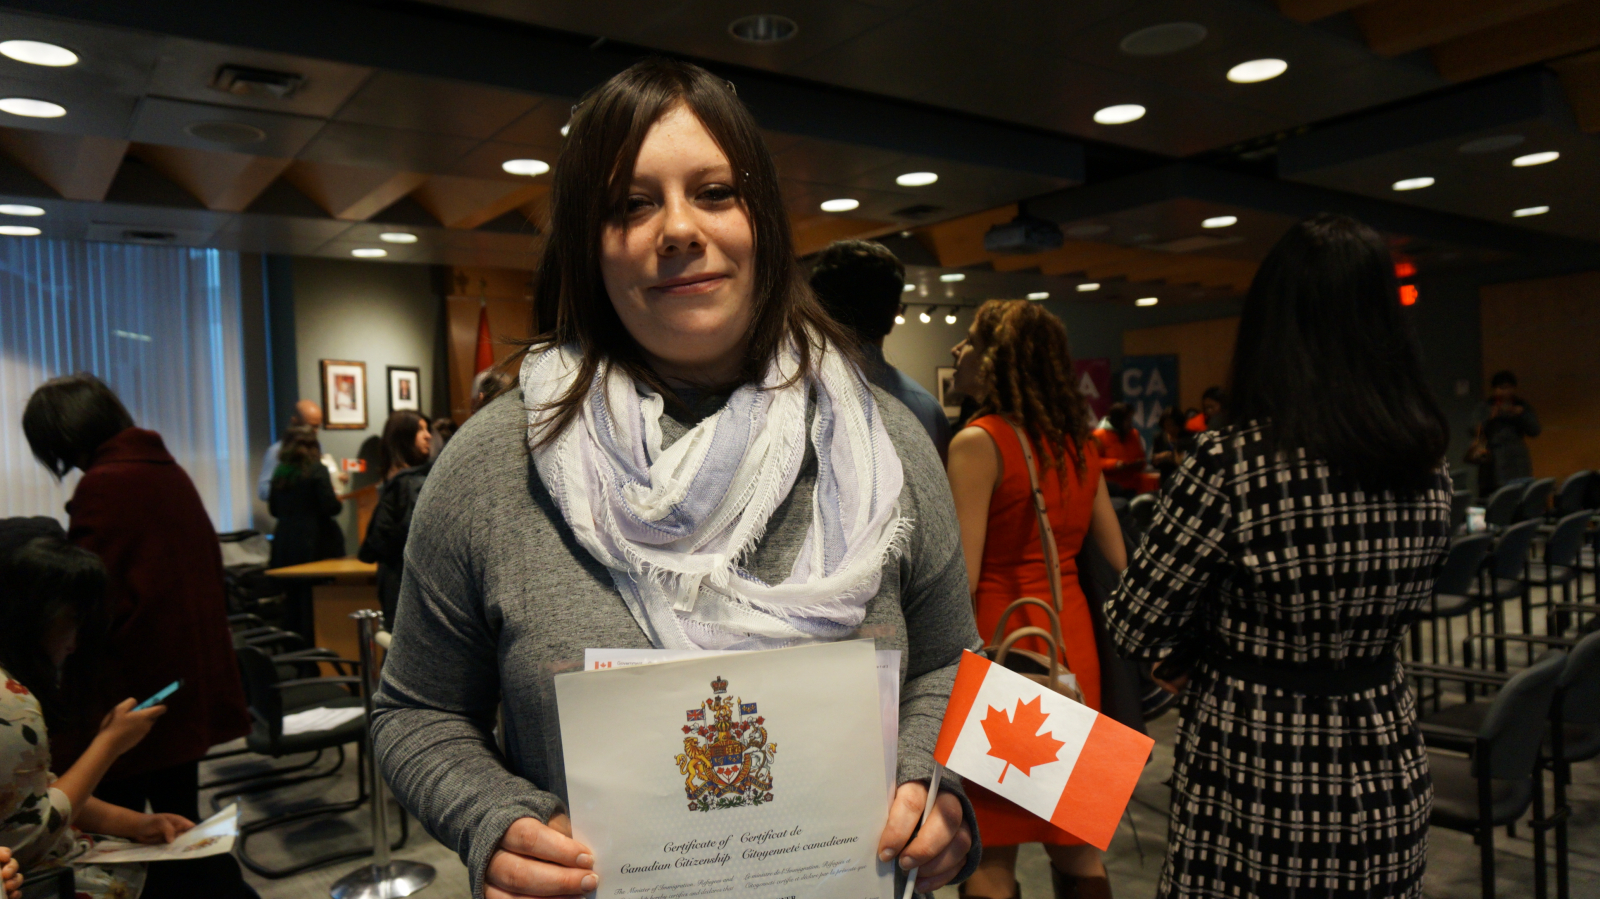 Canadian Citizenship Still Not Equal For All Due To Ongoing Issues